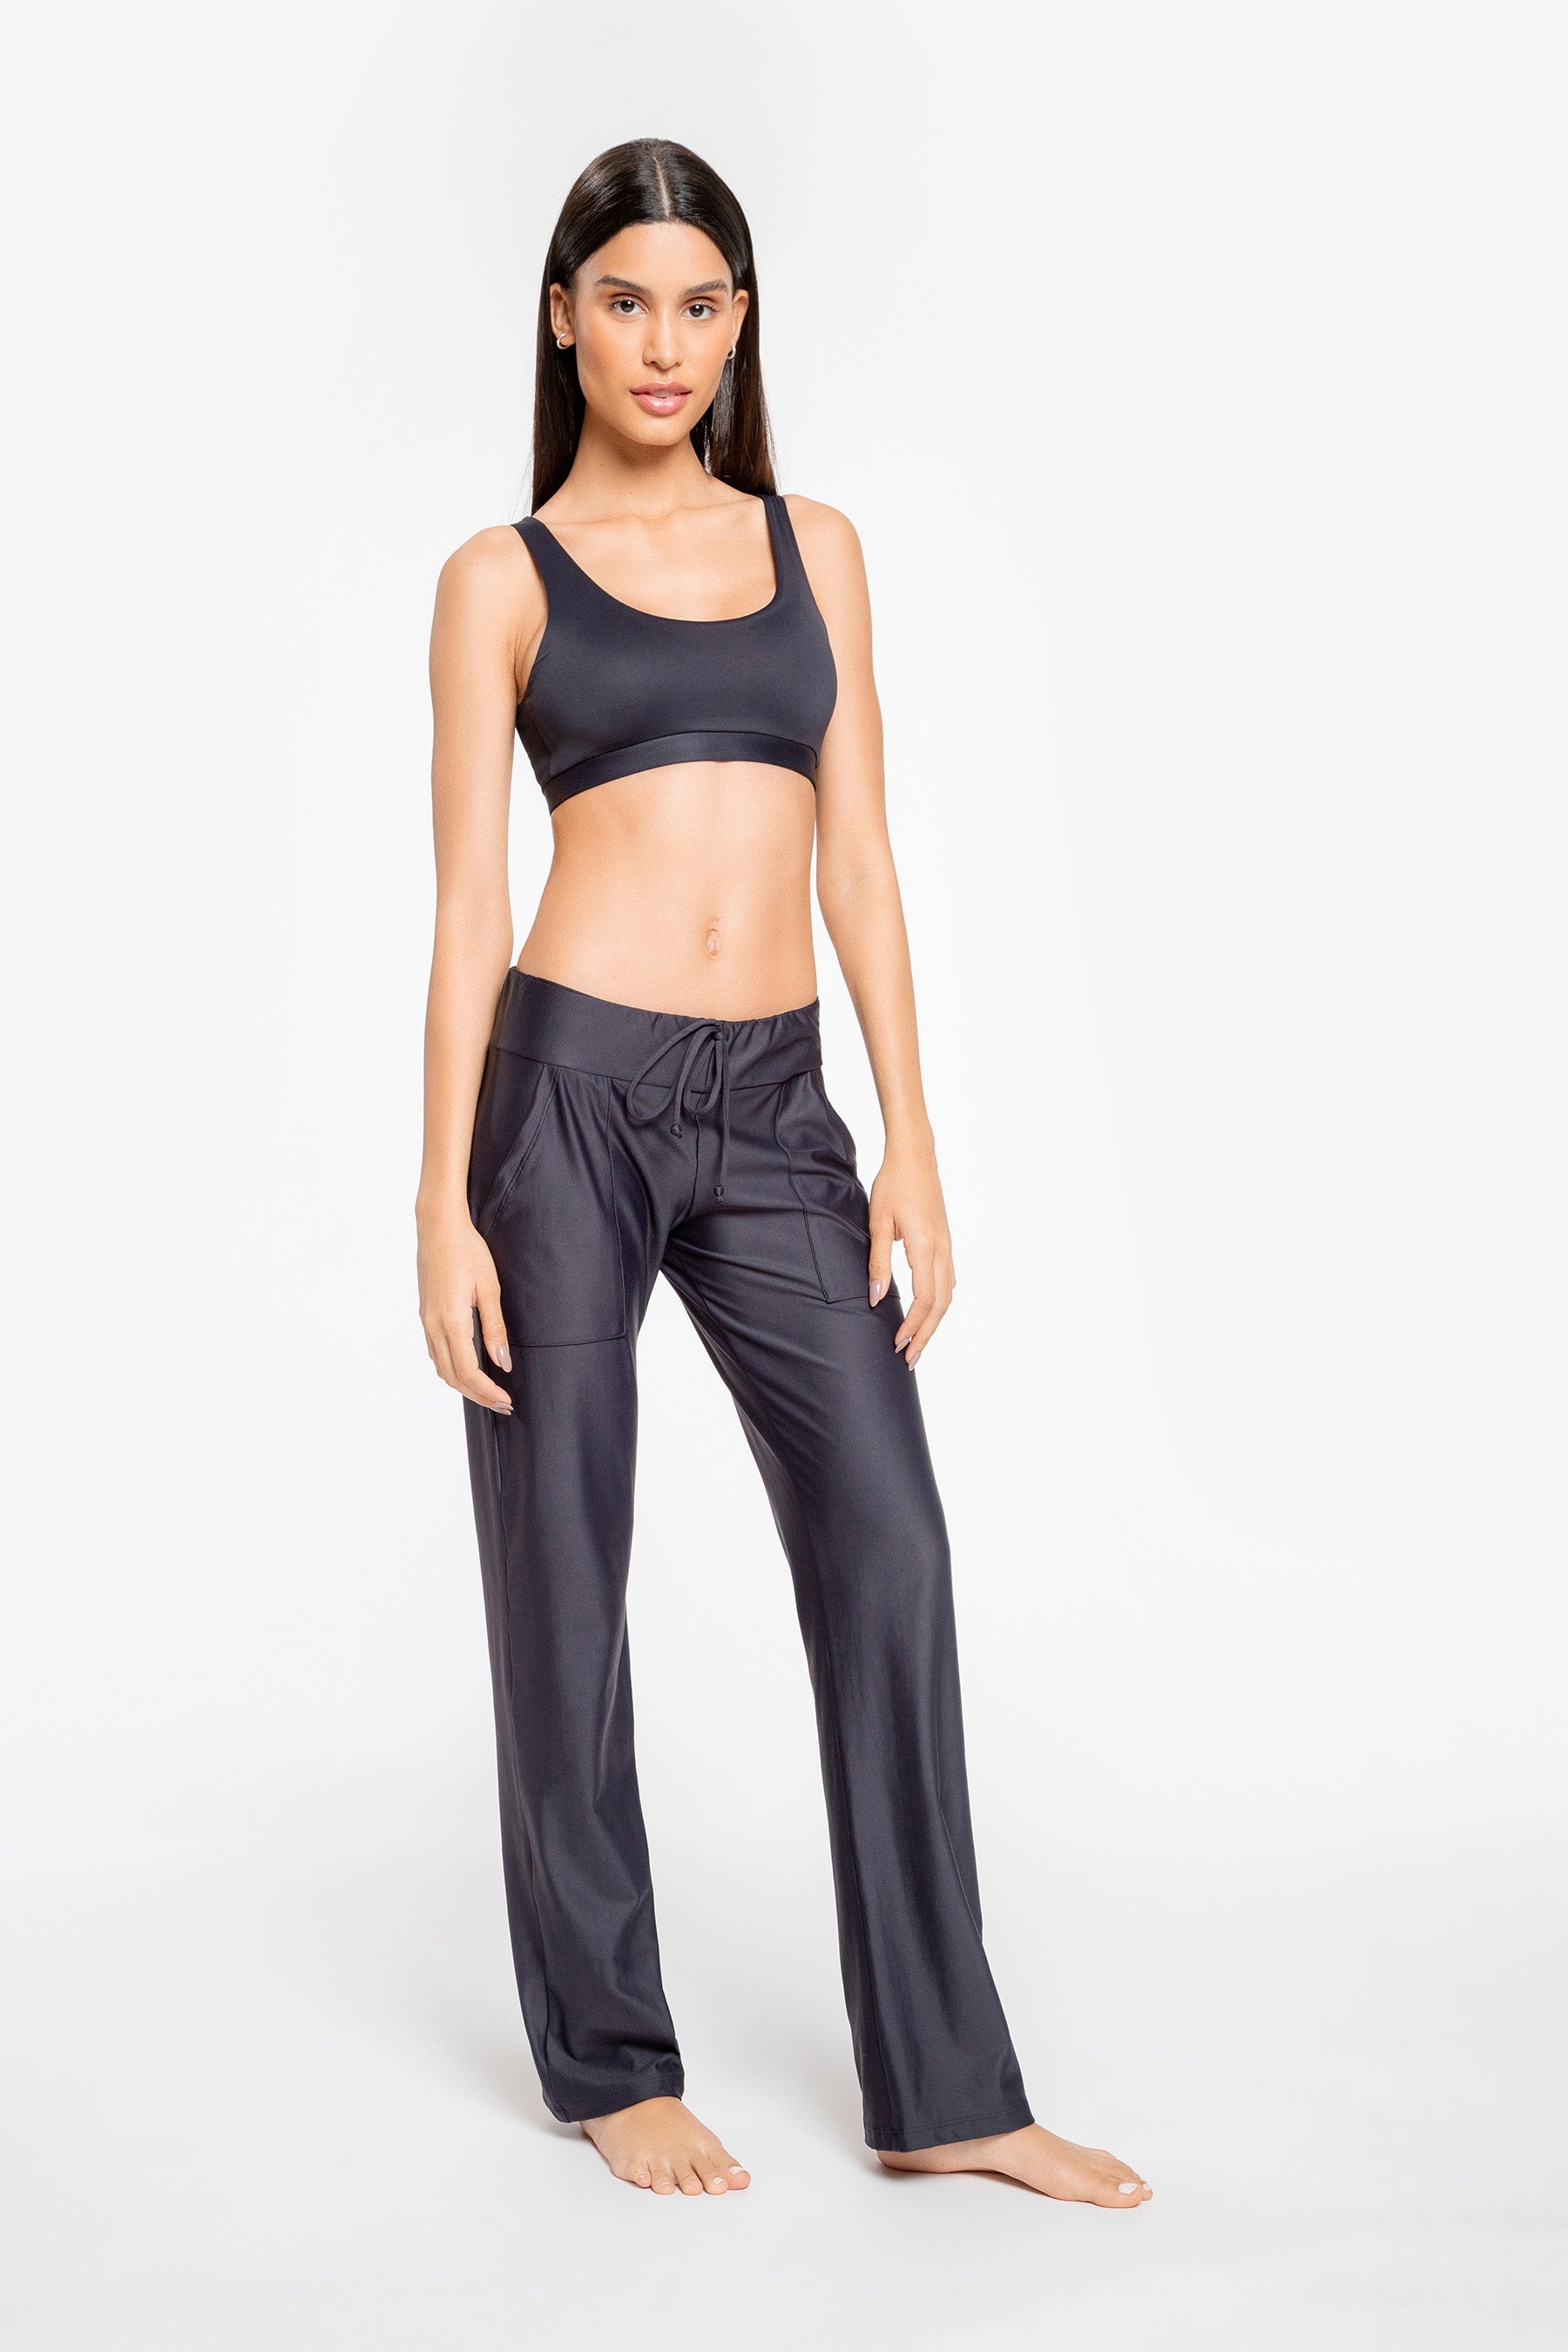 Essential Wellness Pants 1